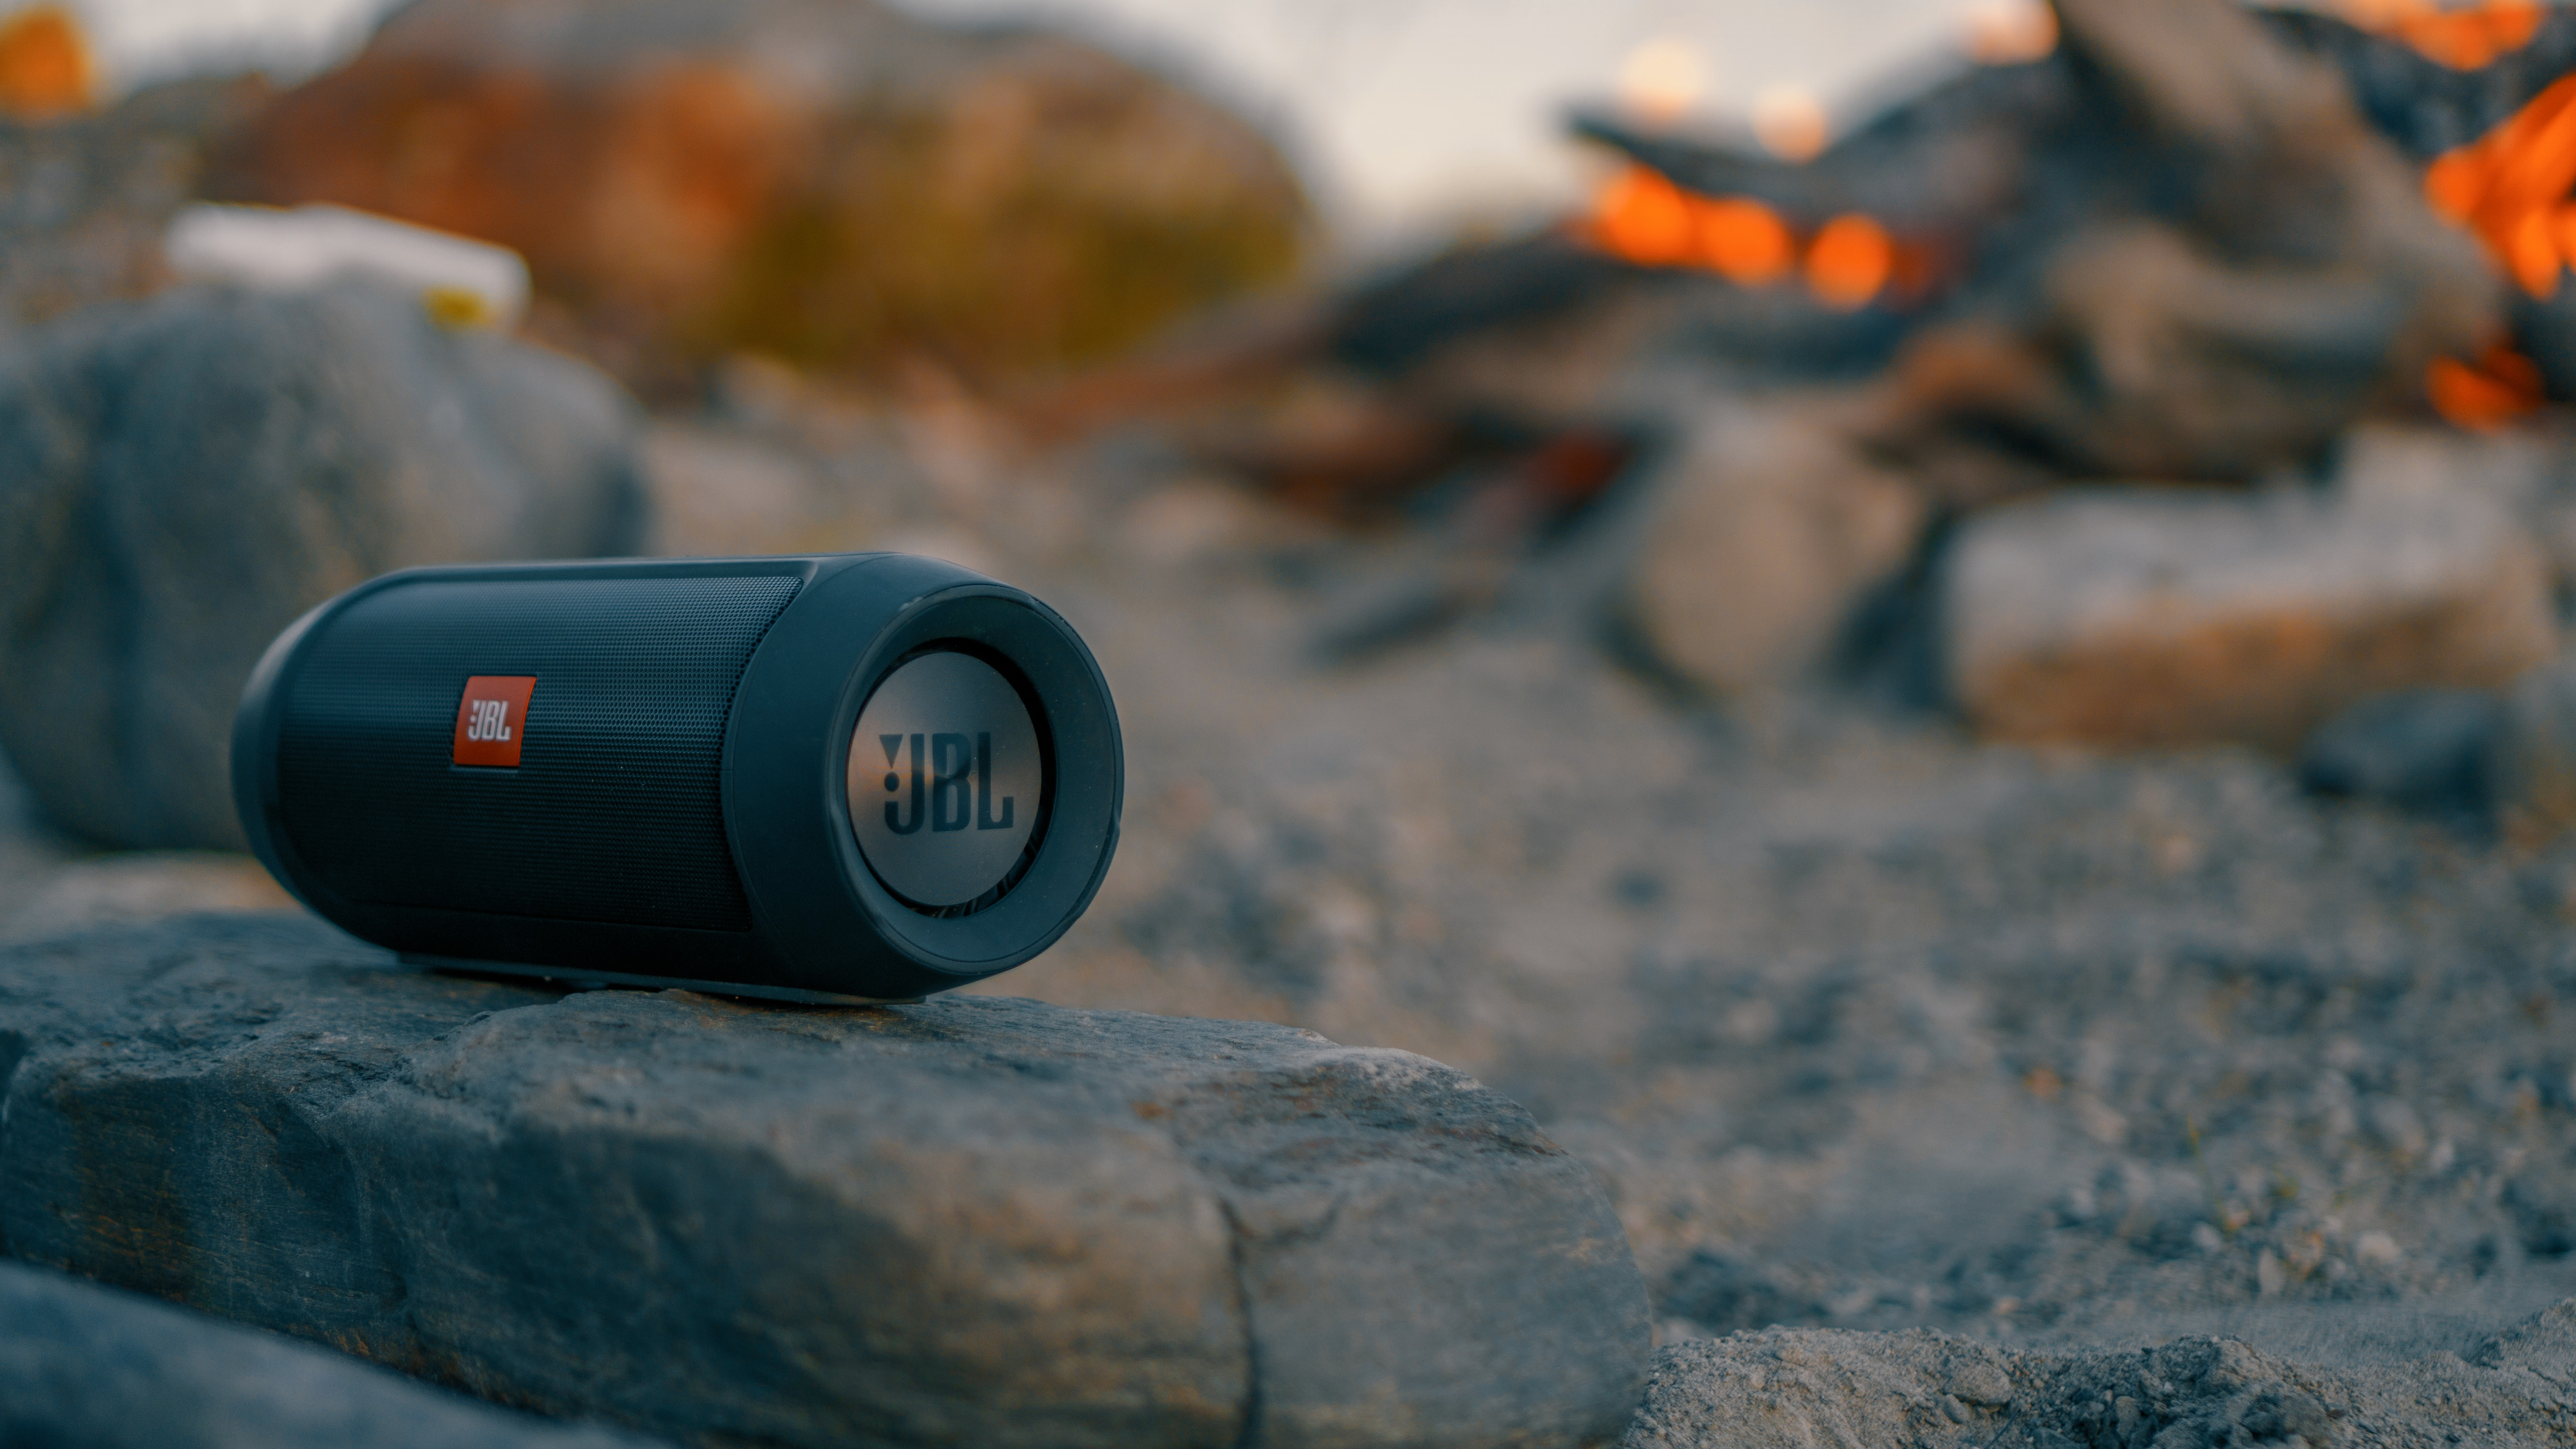 selective focus photography of JBL Charge portable speaker on gray stone